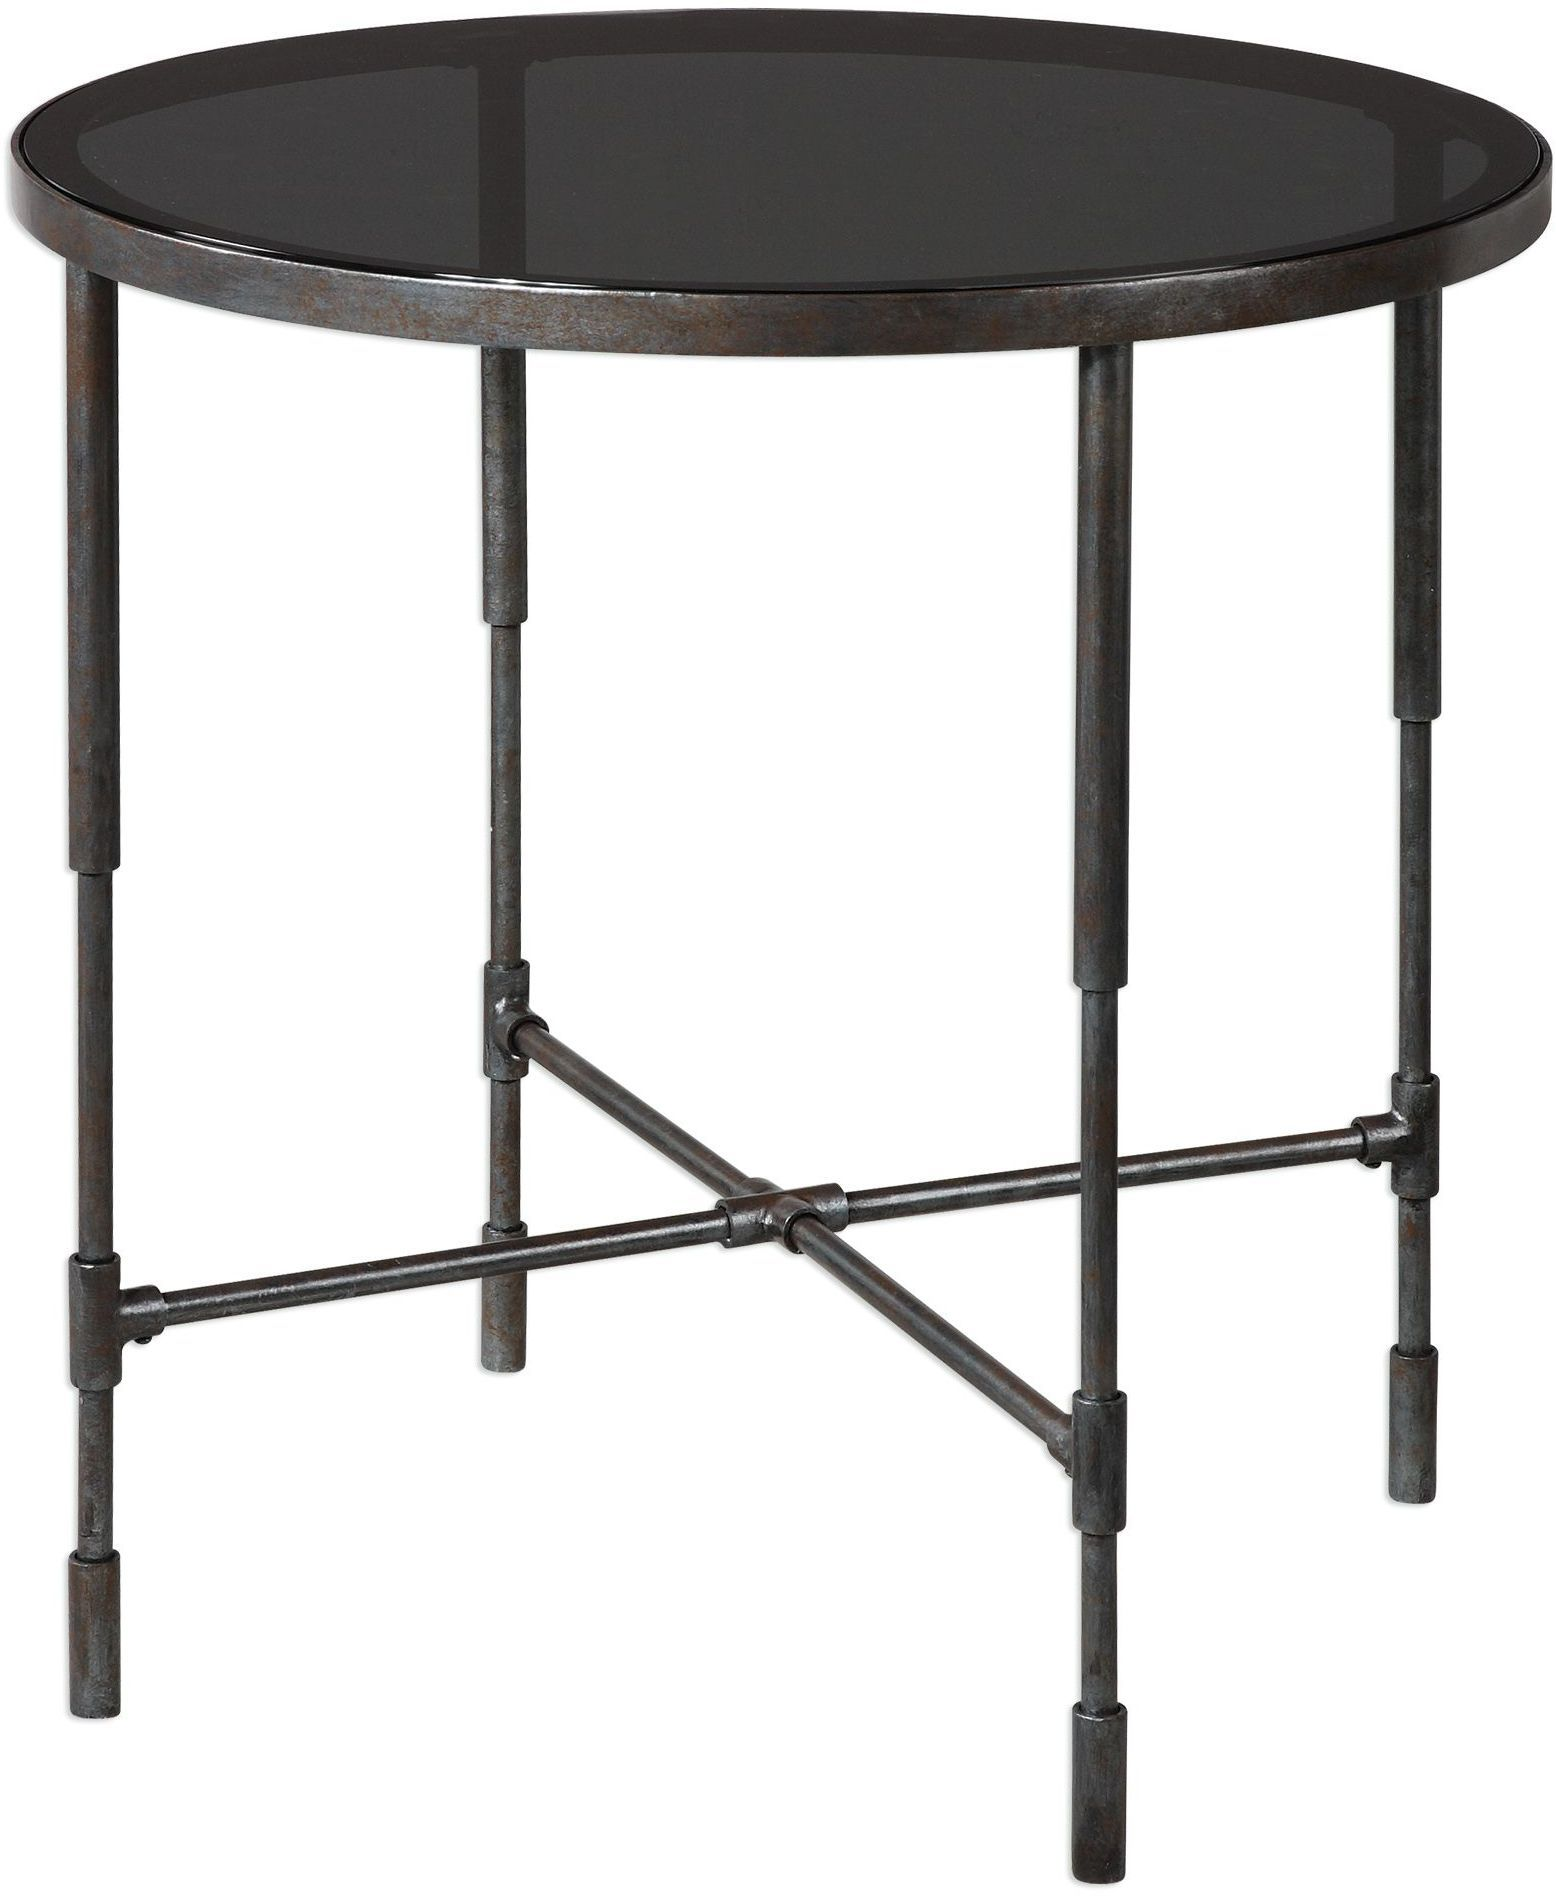 vande aged steel accent table from uttermost coleman furniture laton mirrored kitchen antique side christmas linen tablecloths dining room linens black marble blue and white